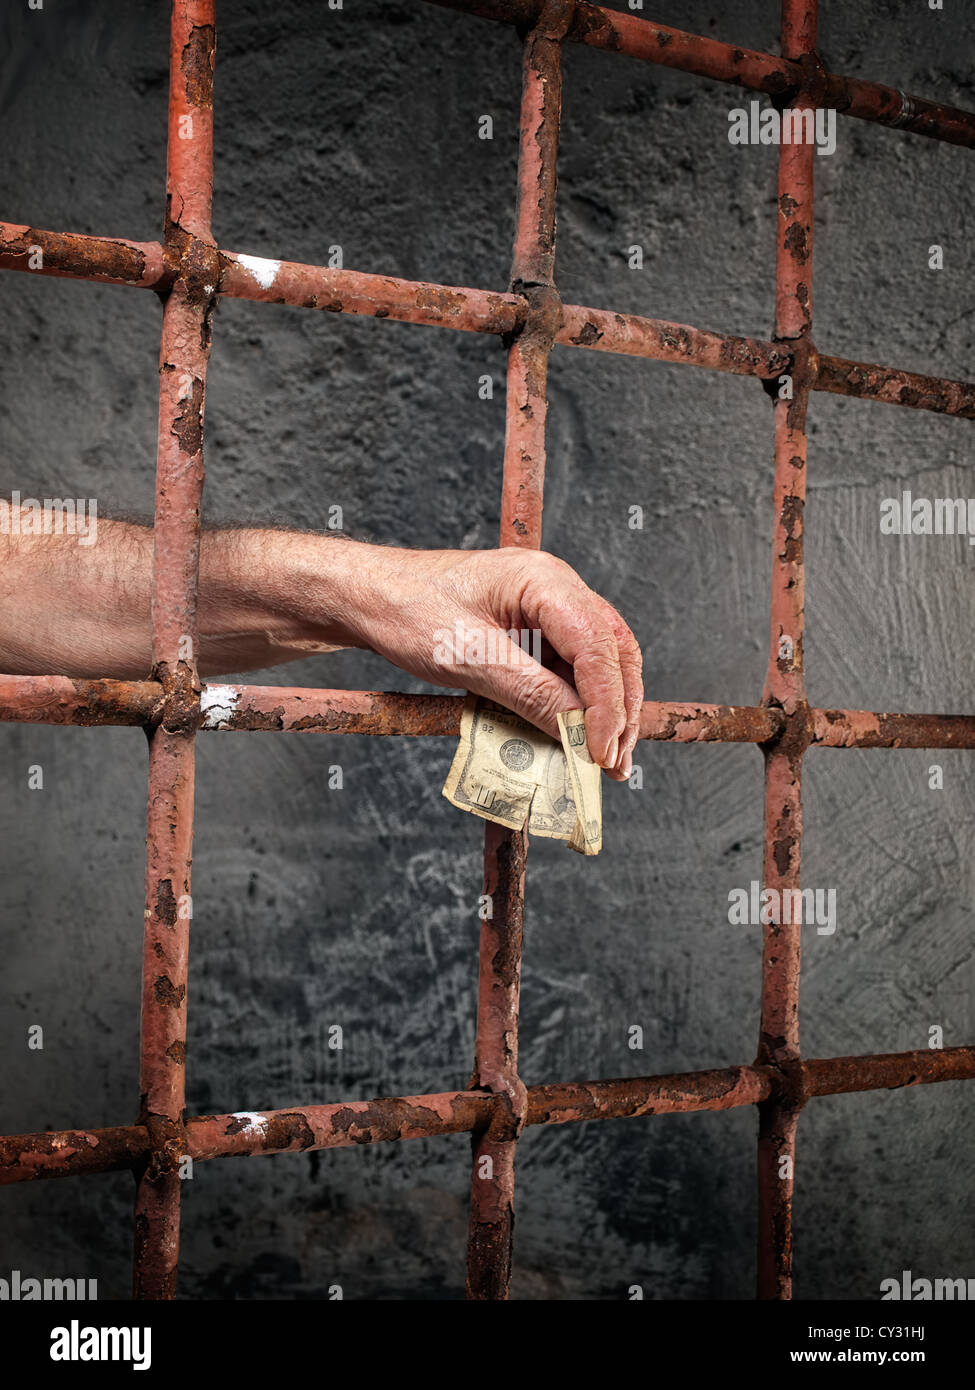 Conceptual image about bribery and corruption in prisons. - Stock Image